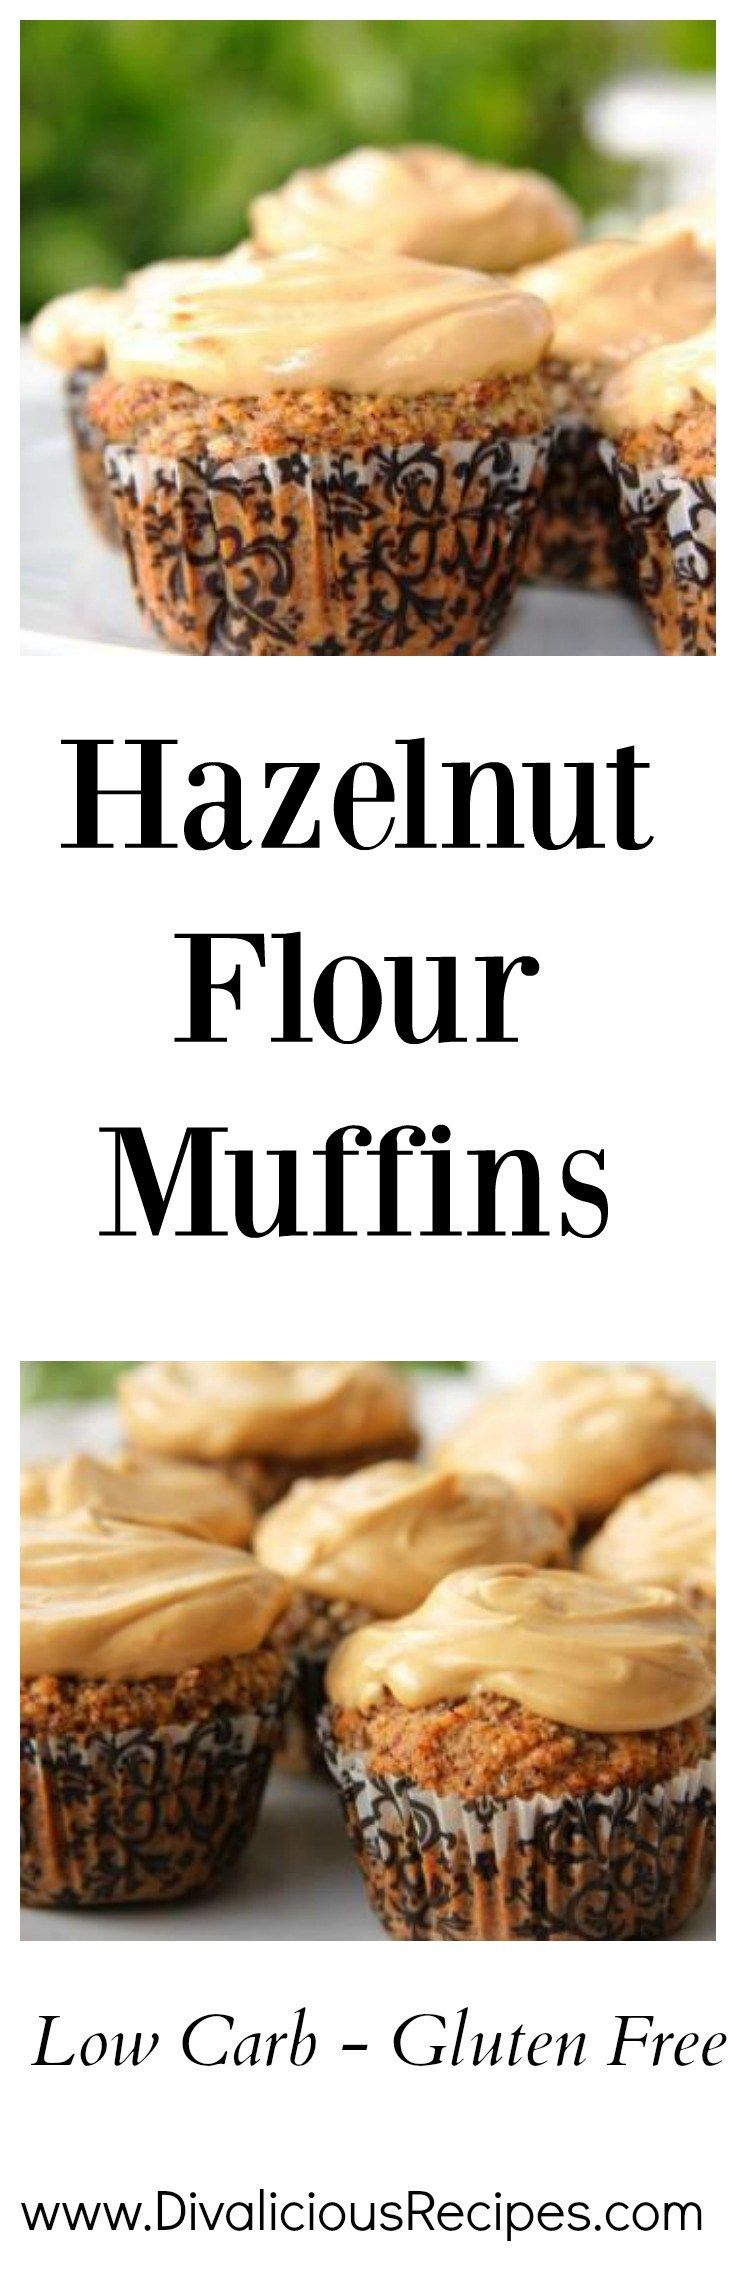 Hazelnut flour muffins that are topped with a delicious coffee cream cheese topping. The flavour combination of hazelnut and coffee is divine.  Recipe - http://divaliciousrecipes.com/2015/07/16/hazelnut-flour-muffins-coffee-cream-cheese-topping/